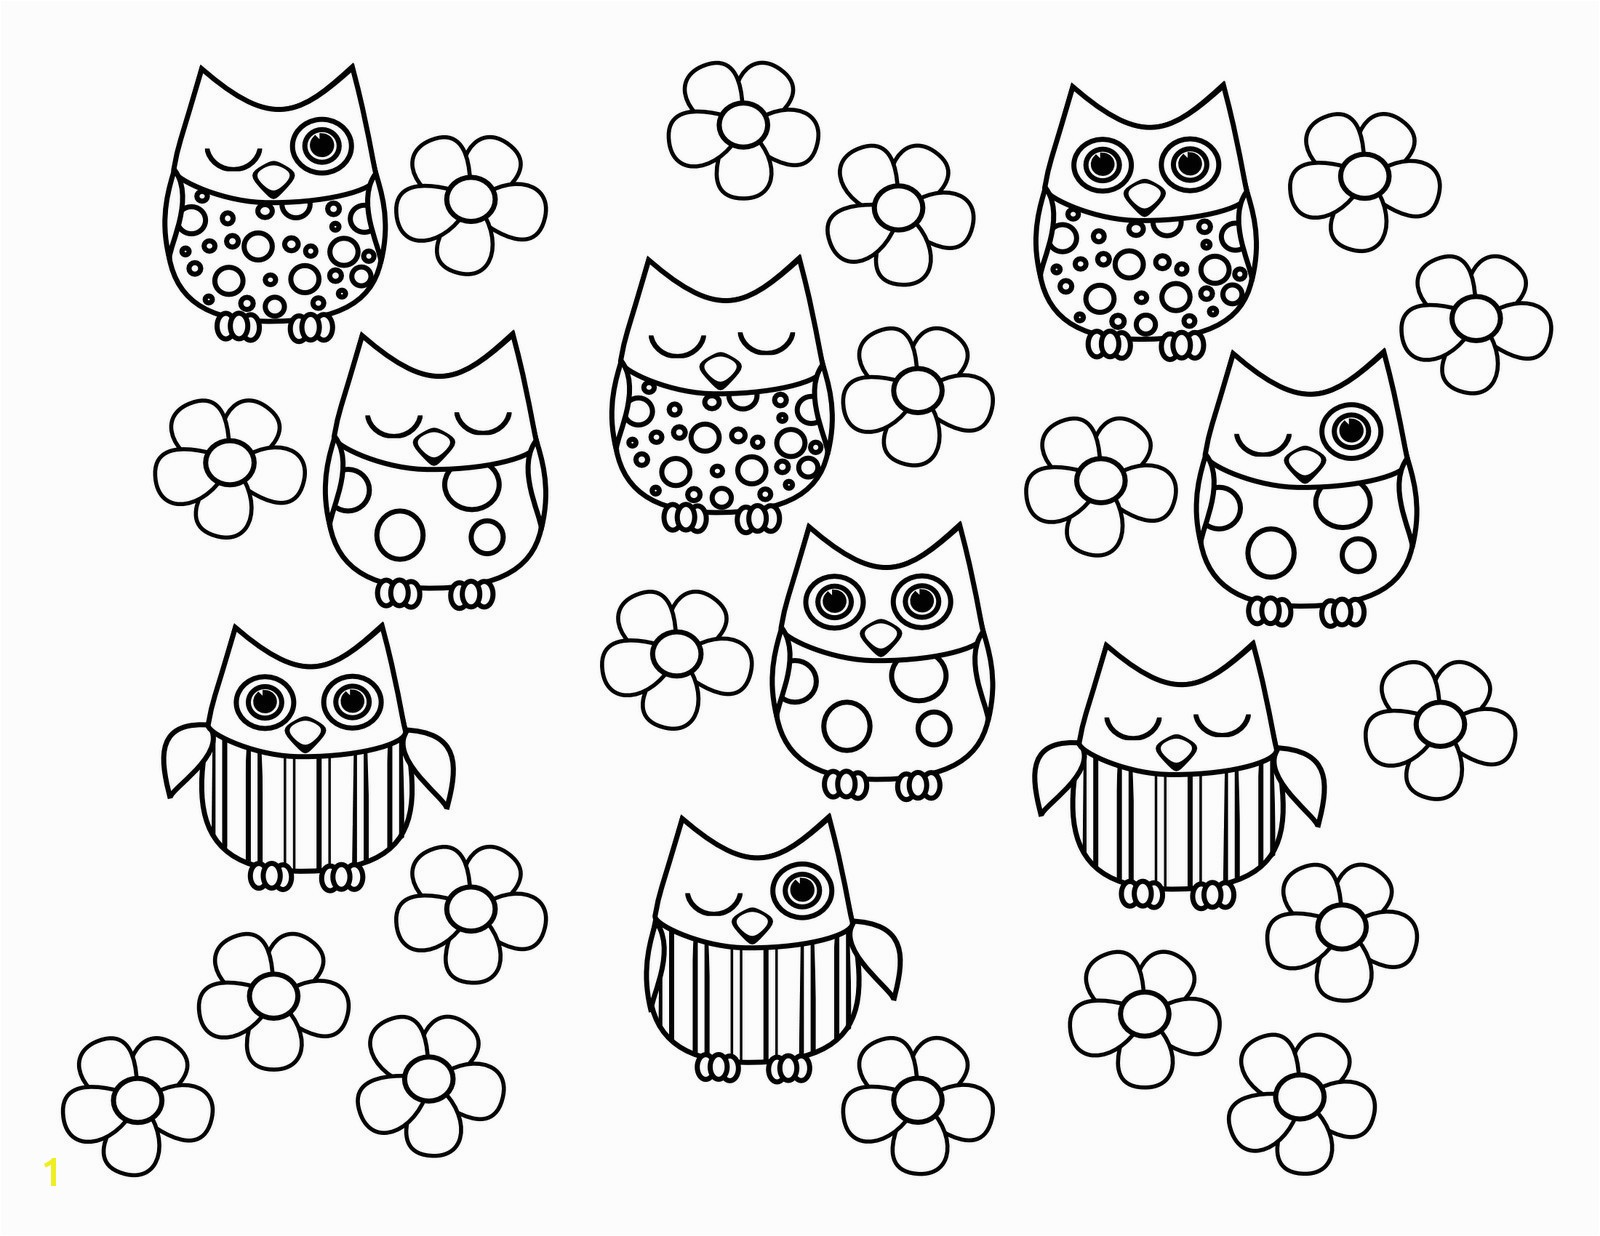 Printable Owl Coloring Pages for Adults Inspirational Printable Owl Coloring Pages Unique Tipper Truck Full Od